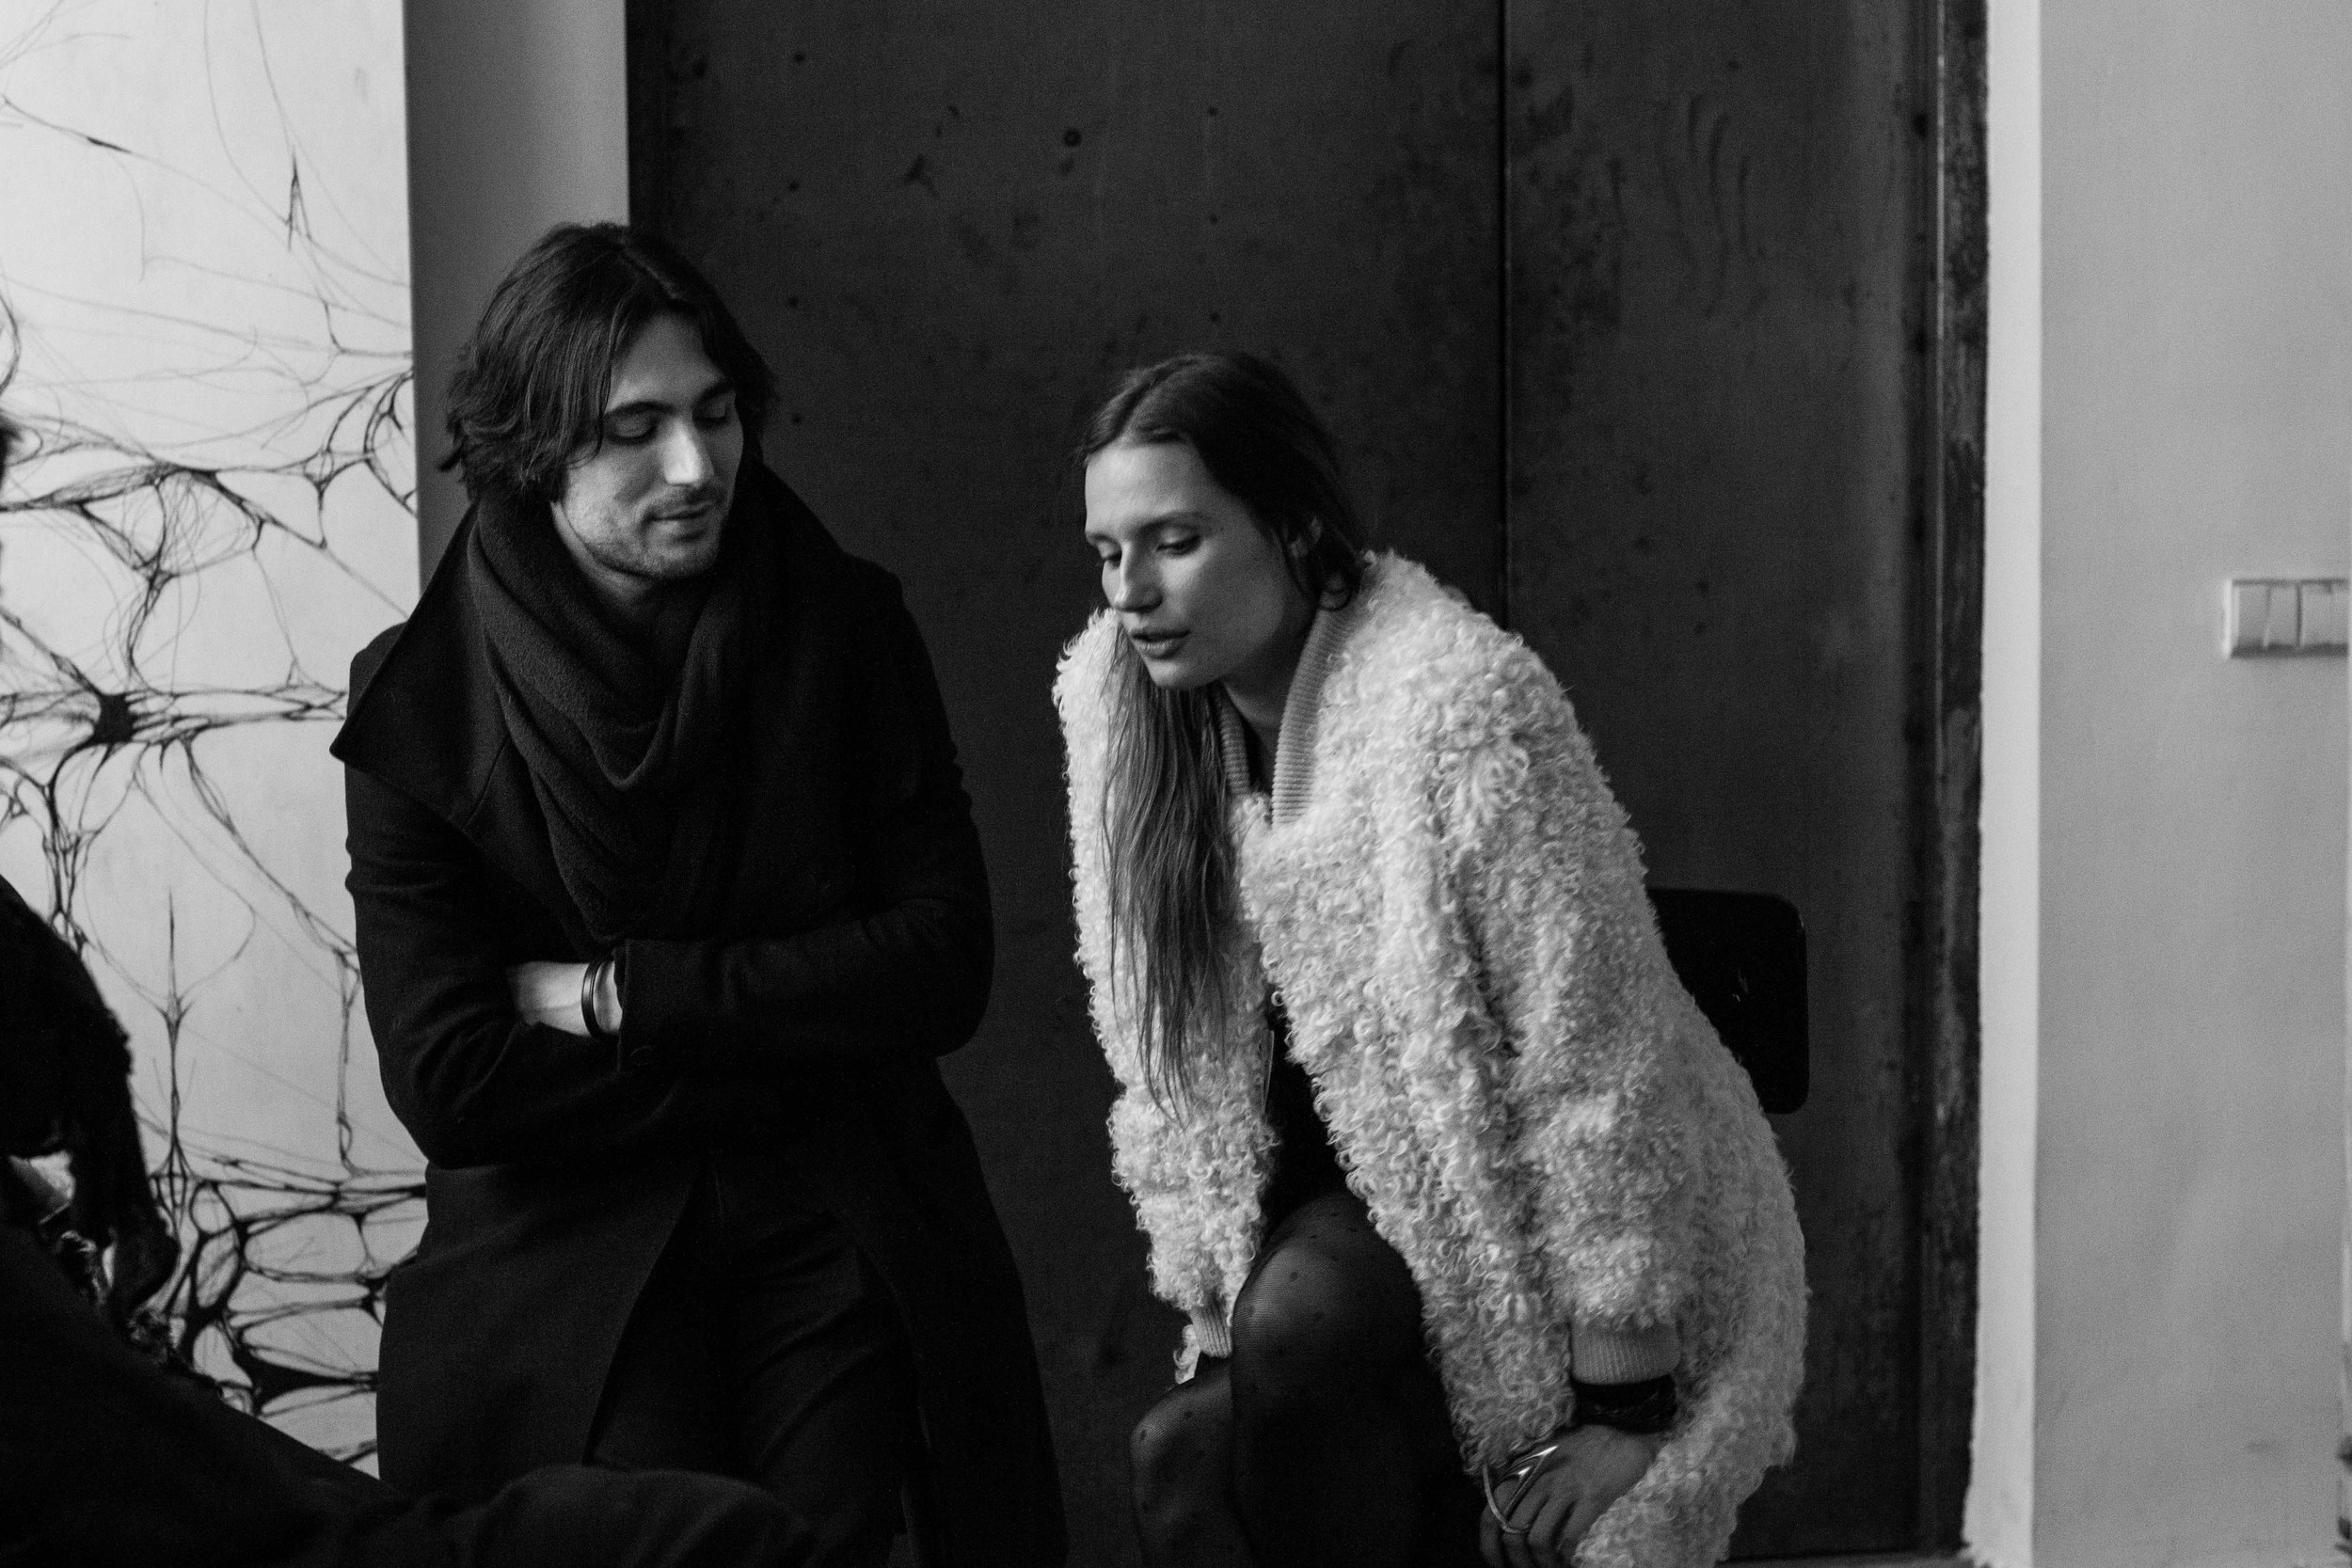 cate underwood & ludovico lombardi during SOME/ONE session at S/T CONCEPT S/TORE interviewed by maiko nakamura & jct photographed by arpa poonsriratt   S/TUDIO